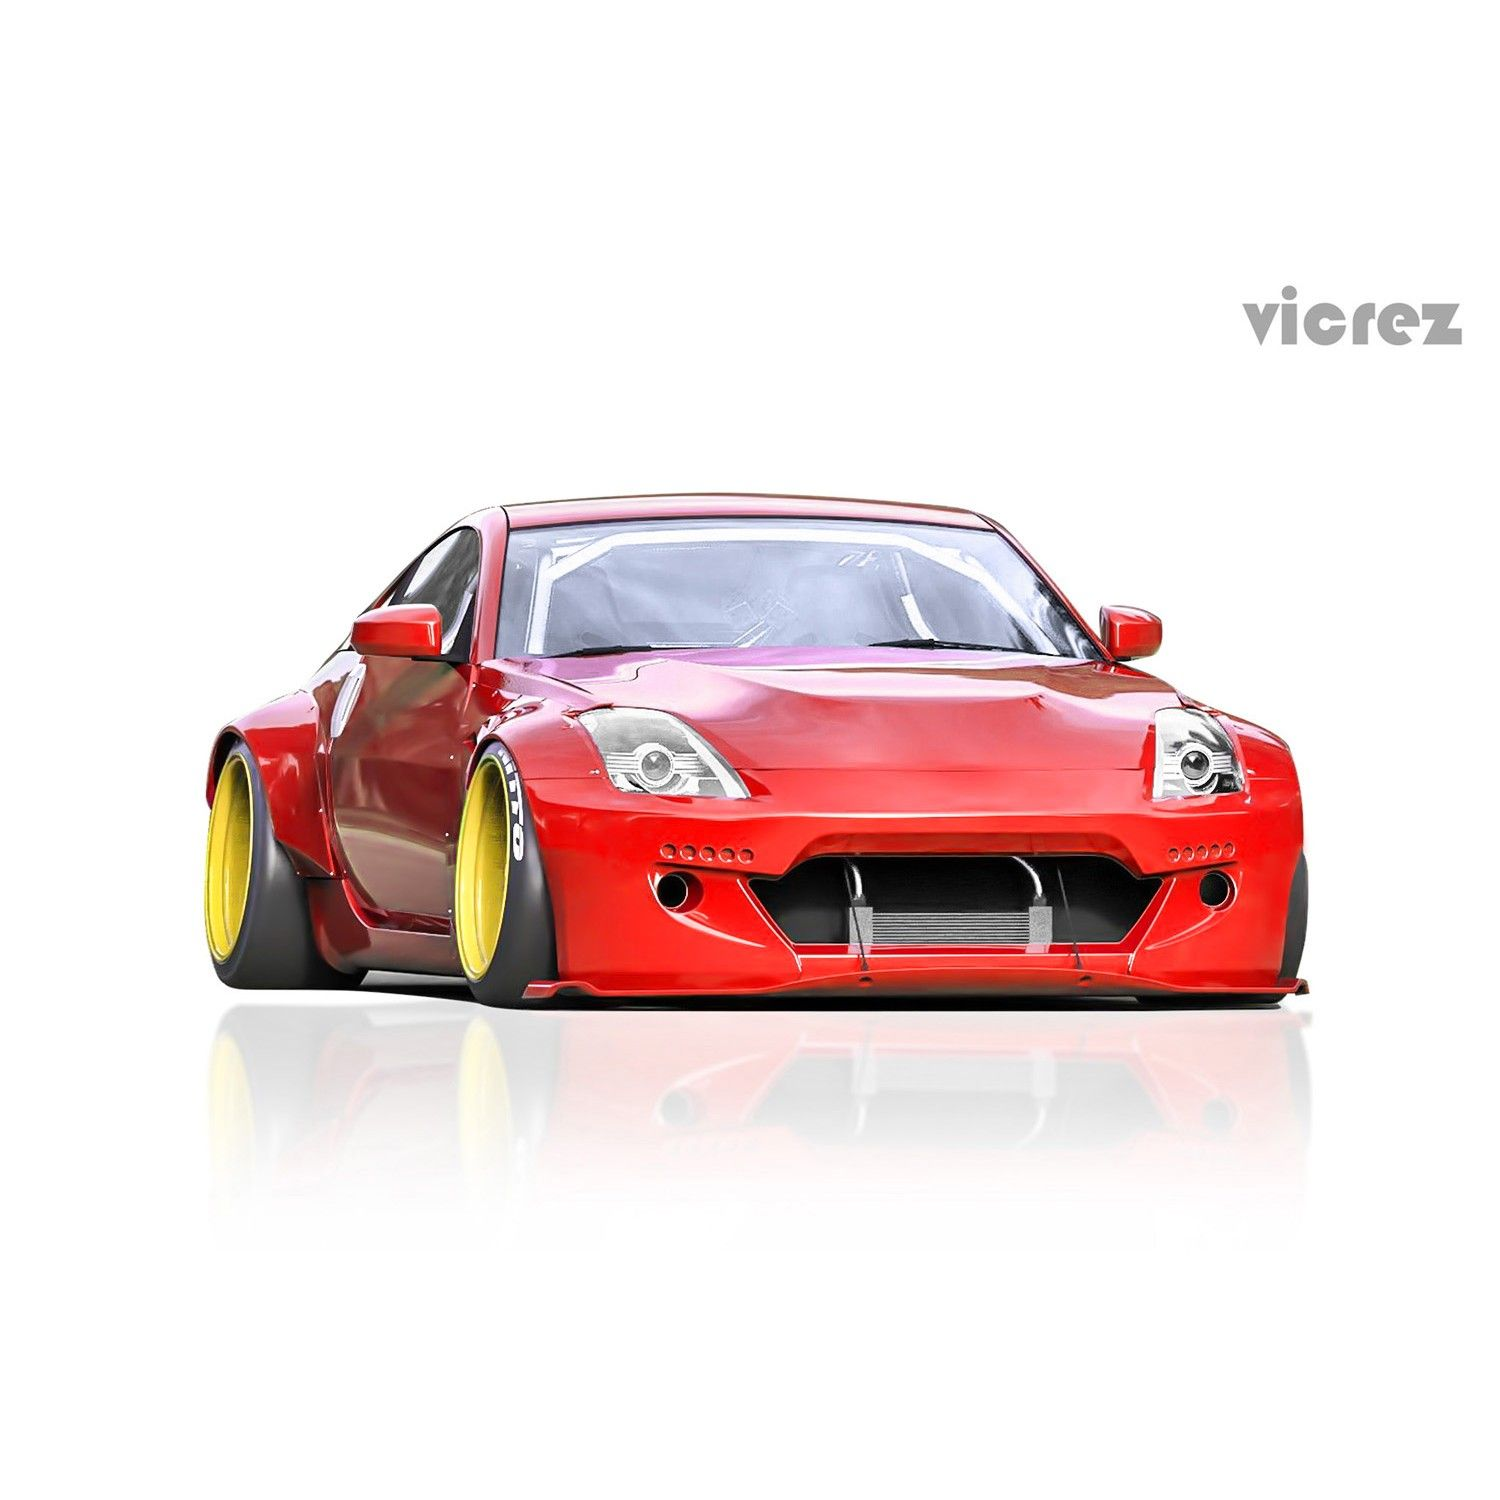 Nissan Juke Yellow Car 4k Wallpaper: Vicrez Nissan 350z 2003-2008 Rocket Bunny Polyurethane